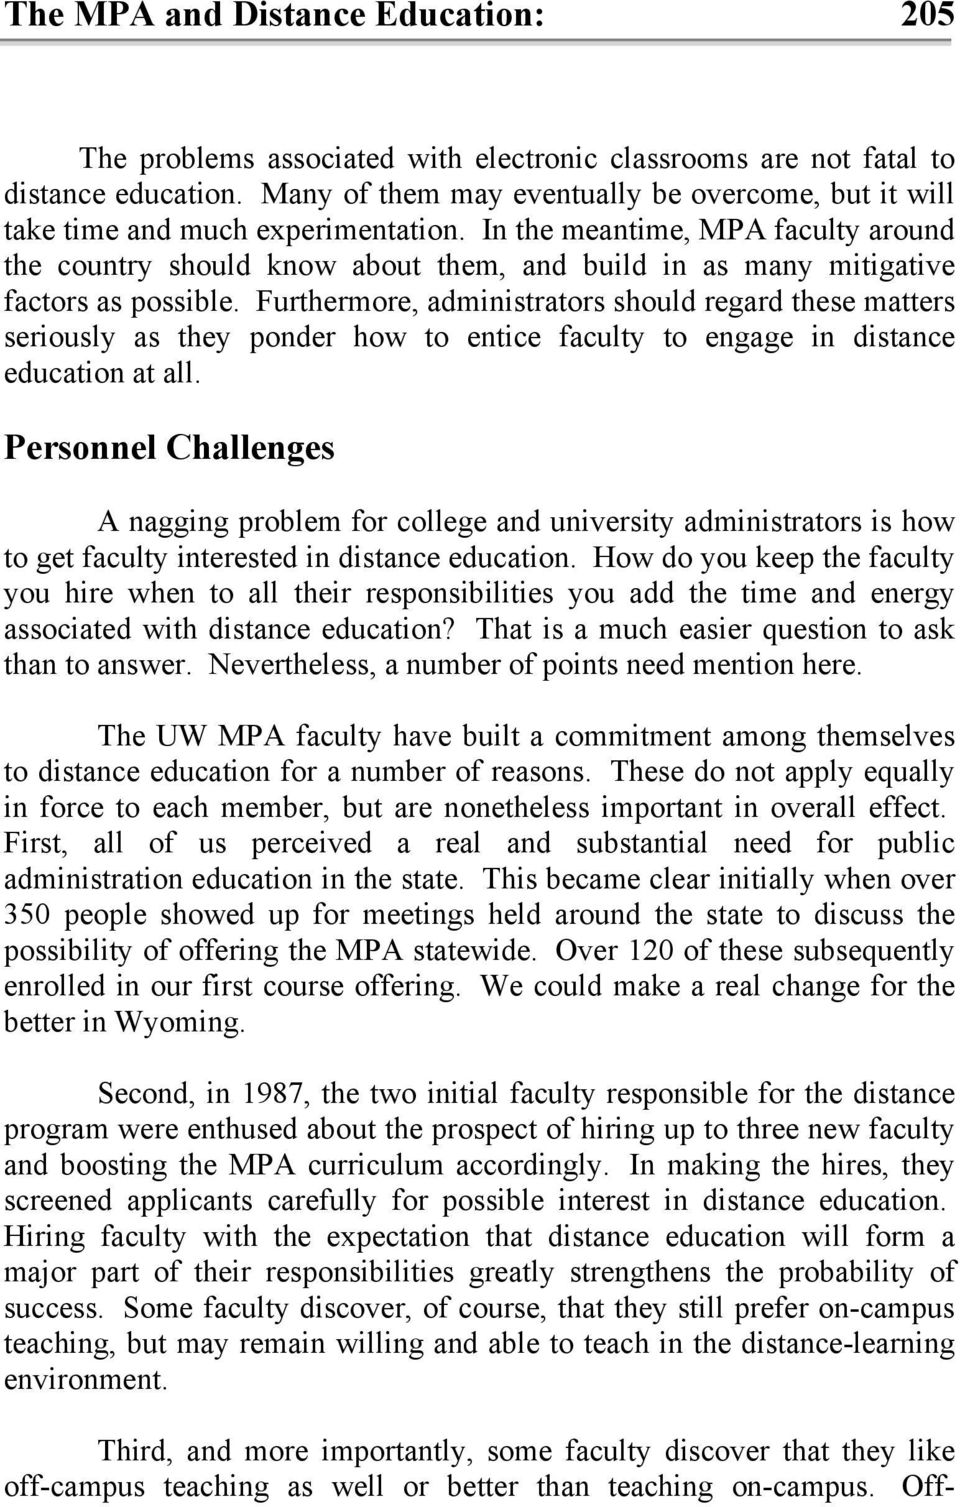 In the meantime, MPA faculty around the country should know about them, and build in as many mitigative factors as possible.